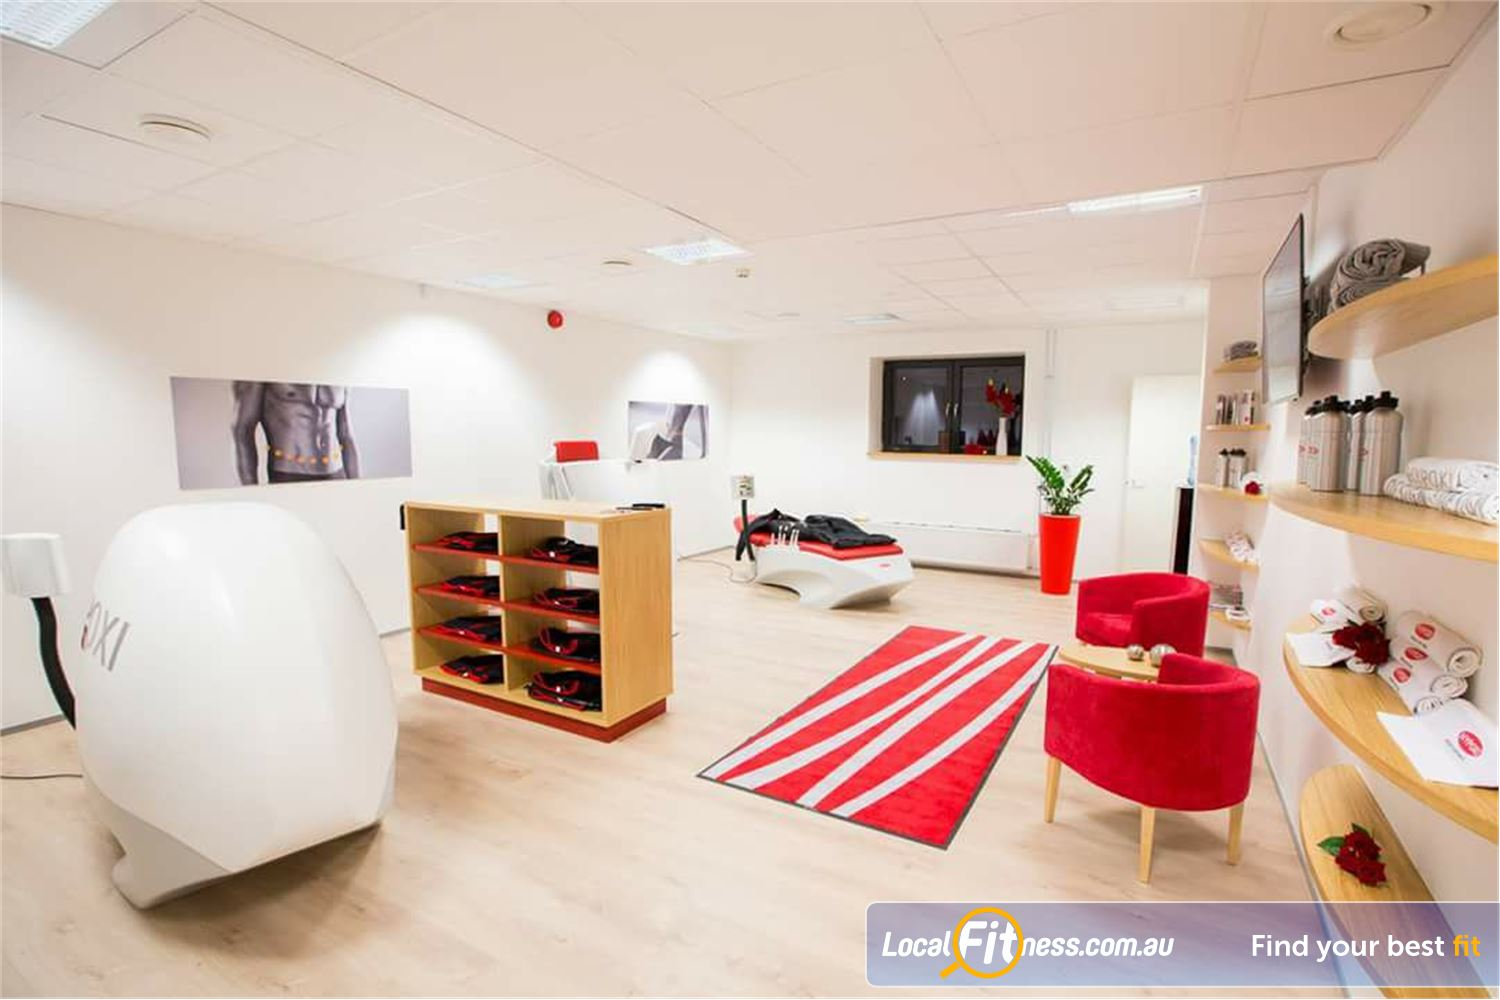 HYPOXI Weight Loss Port Melbourne State of the art weight-loss machines at HYPOXI Port Melbourne.